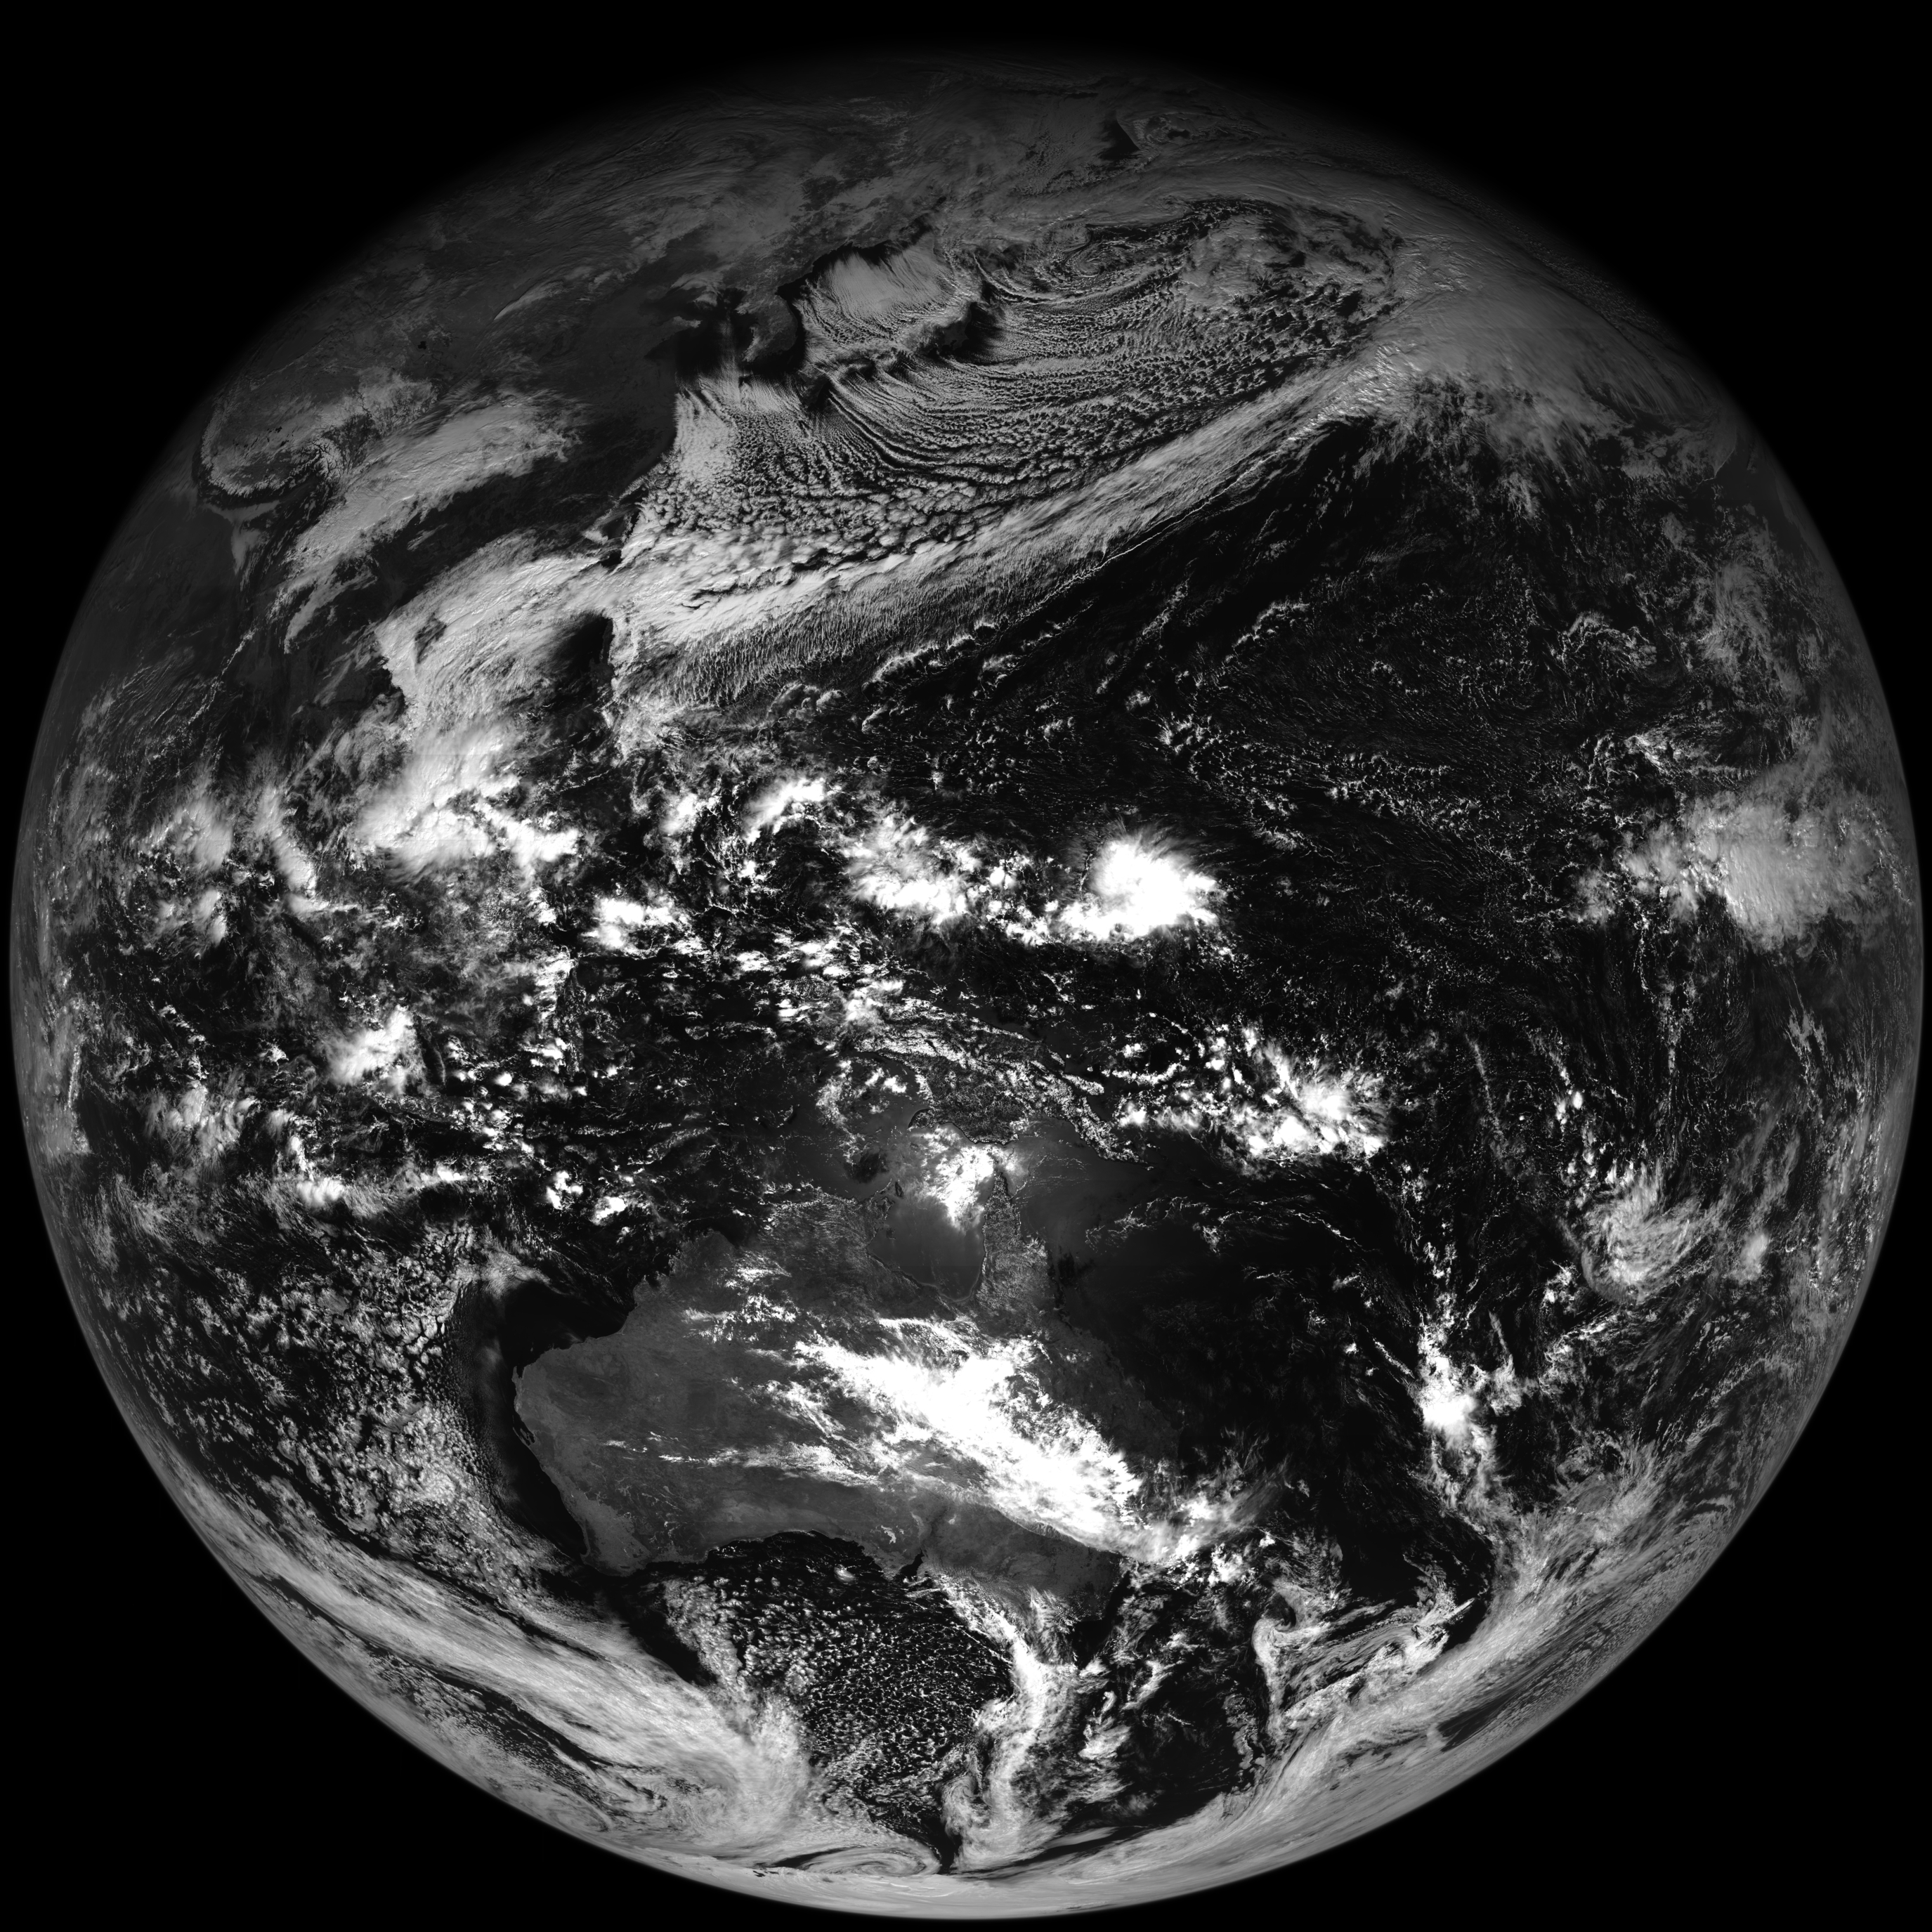 Himawari-8 0.64 µm visible channel image (click to enlage)